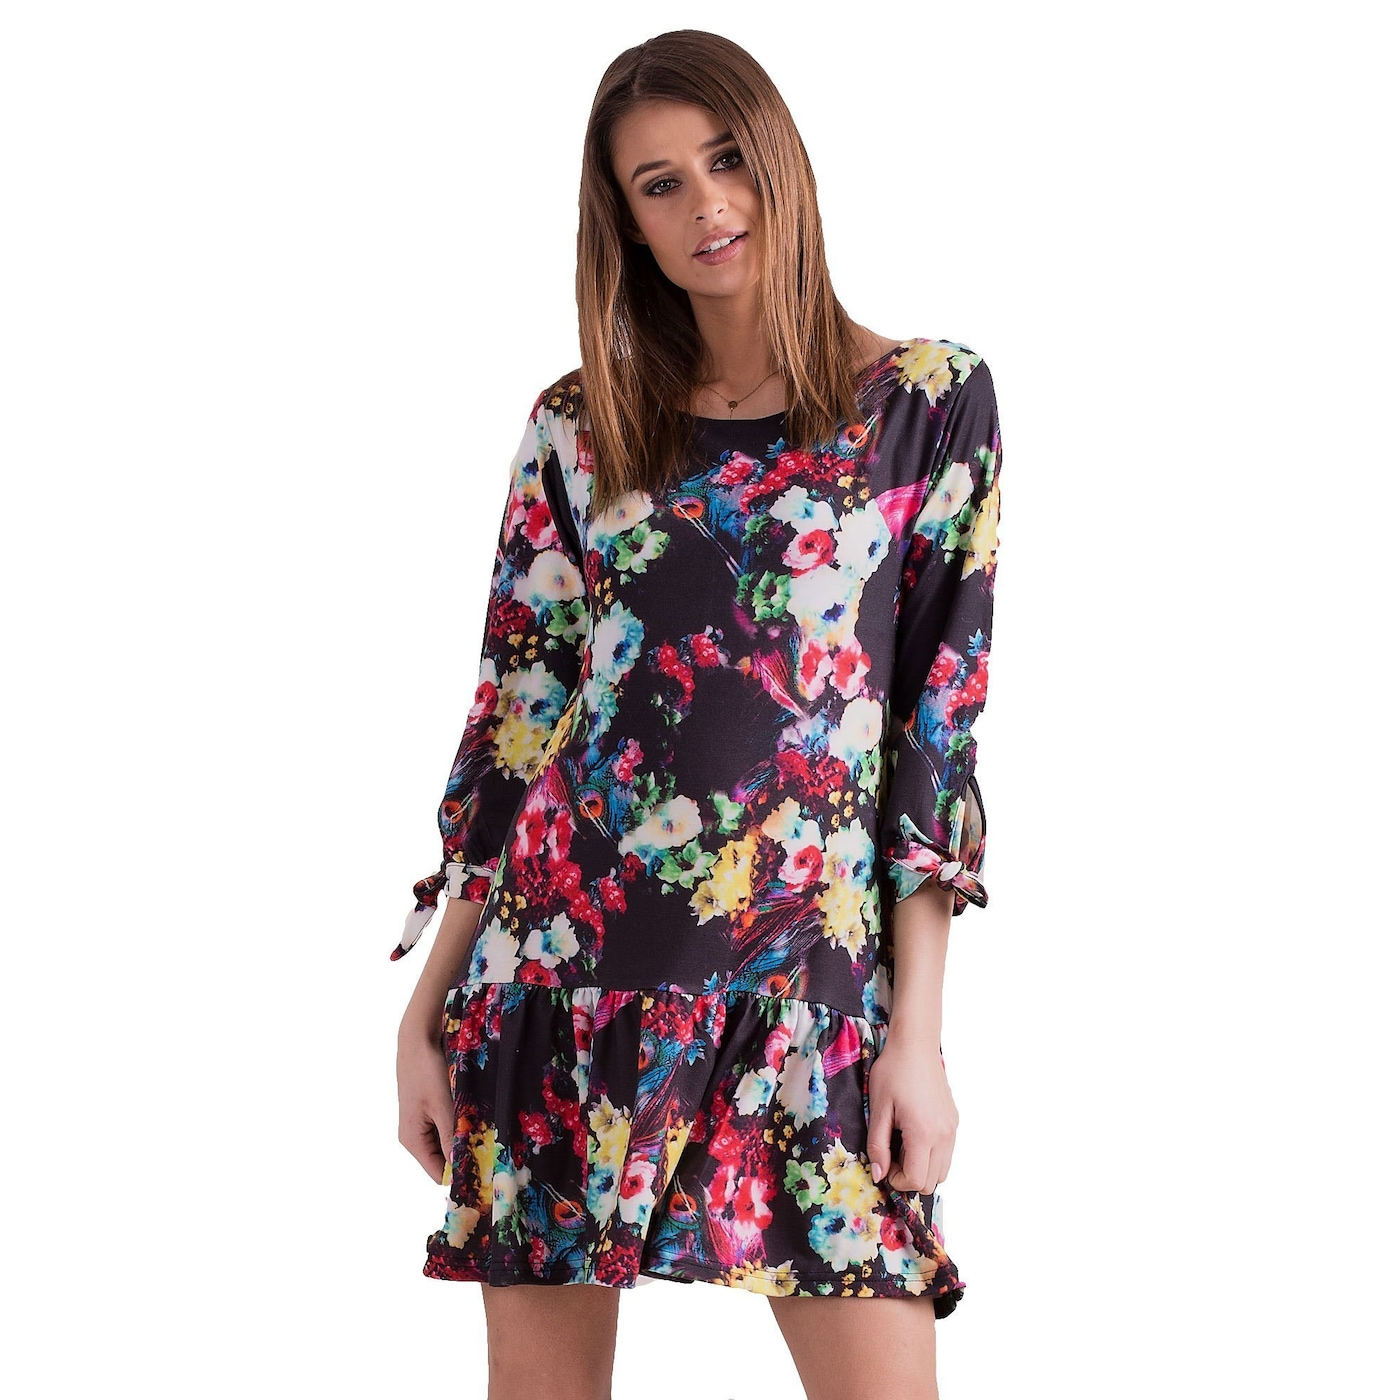 Black floral dress with ties on the sleeves